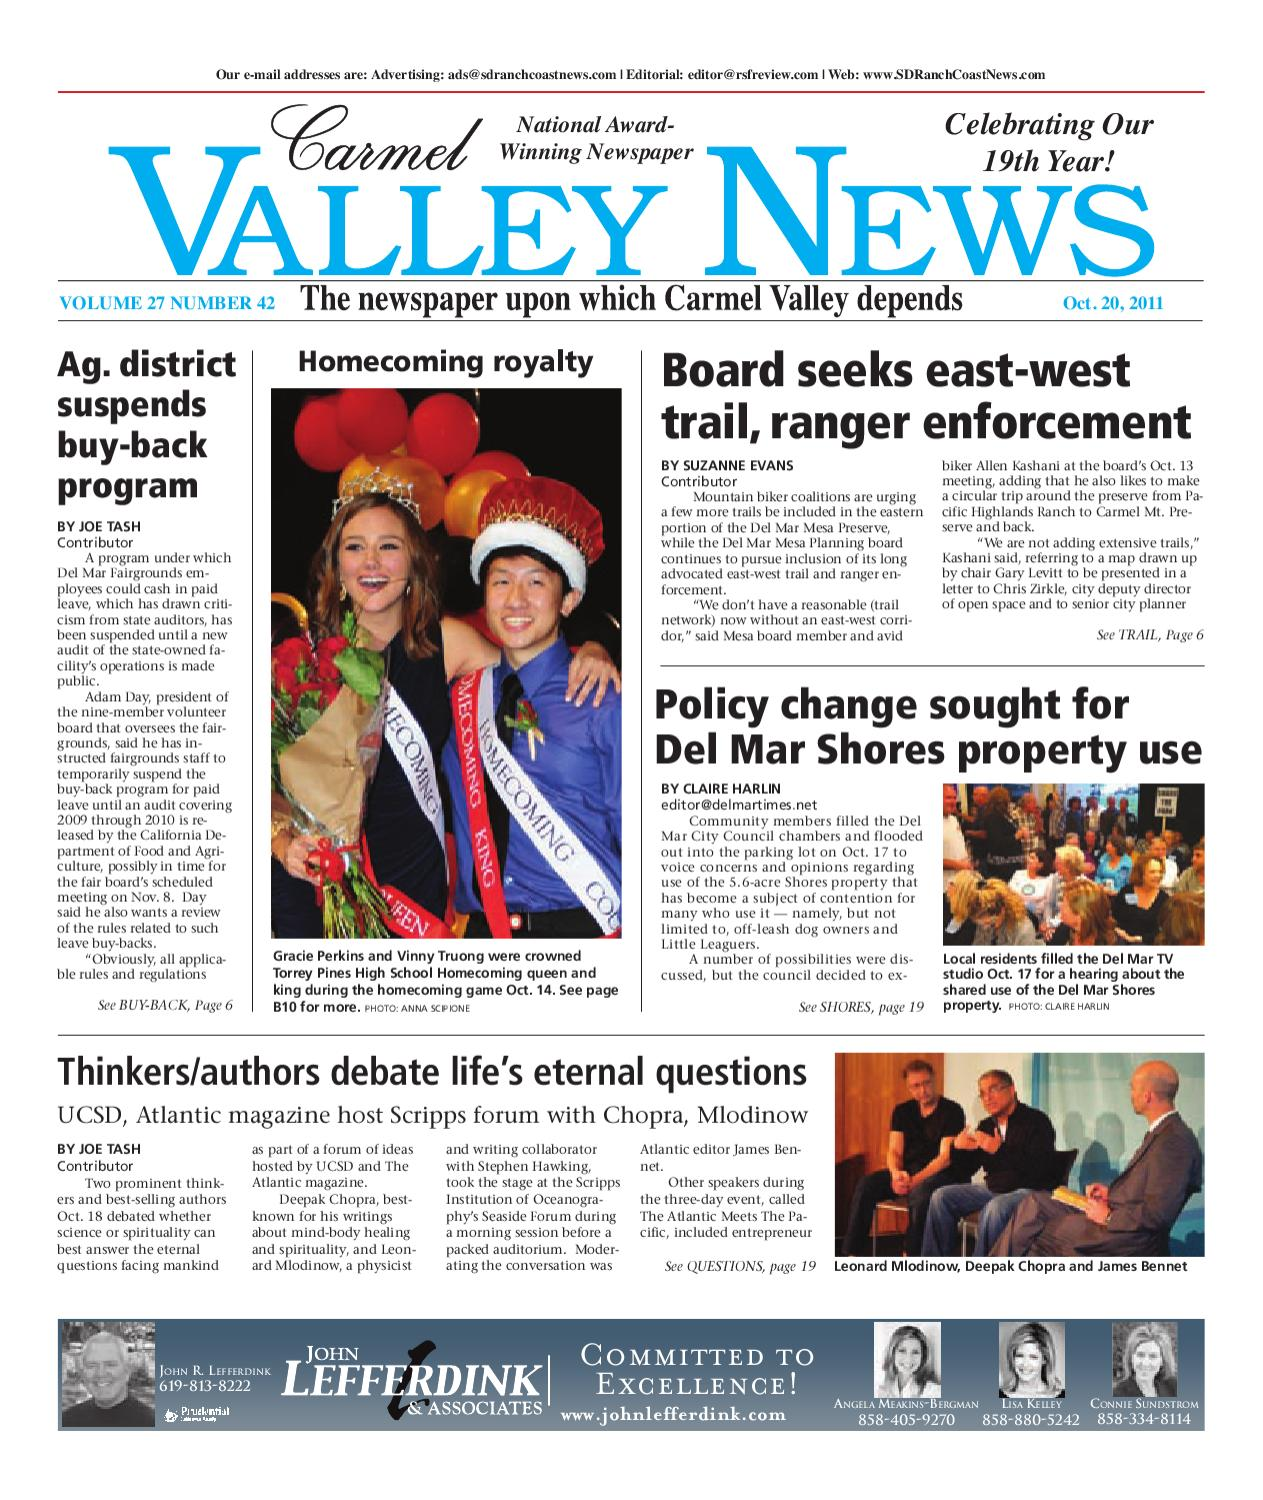 10 20 2011 carmel valley news by mainstreet media issuu malvernweather Choice Image